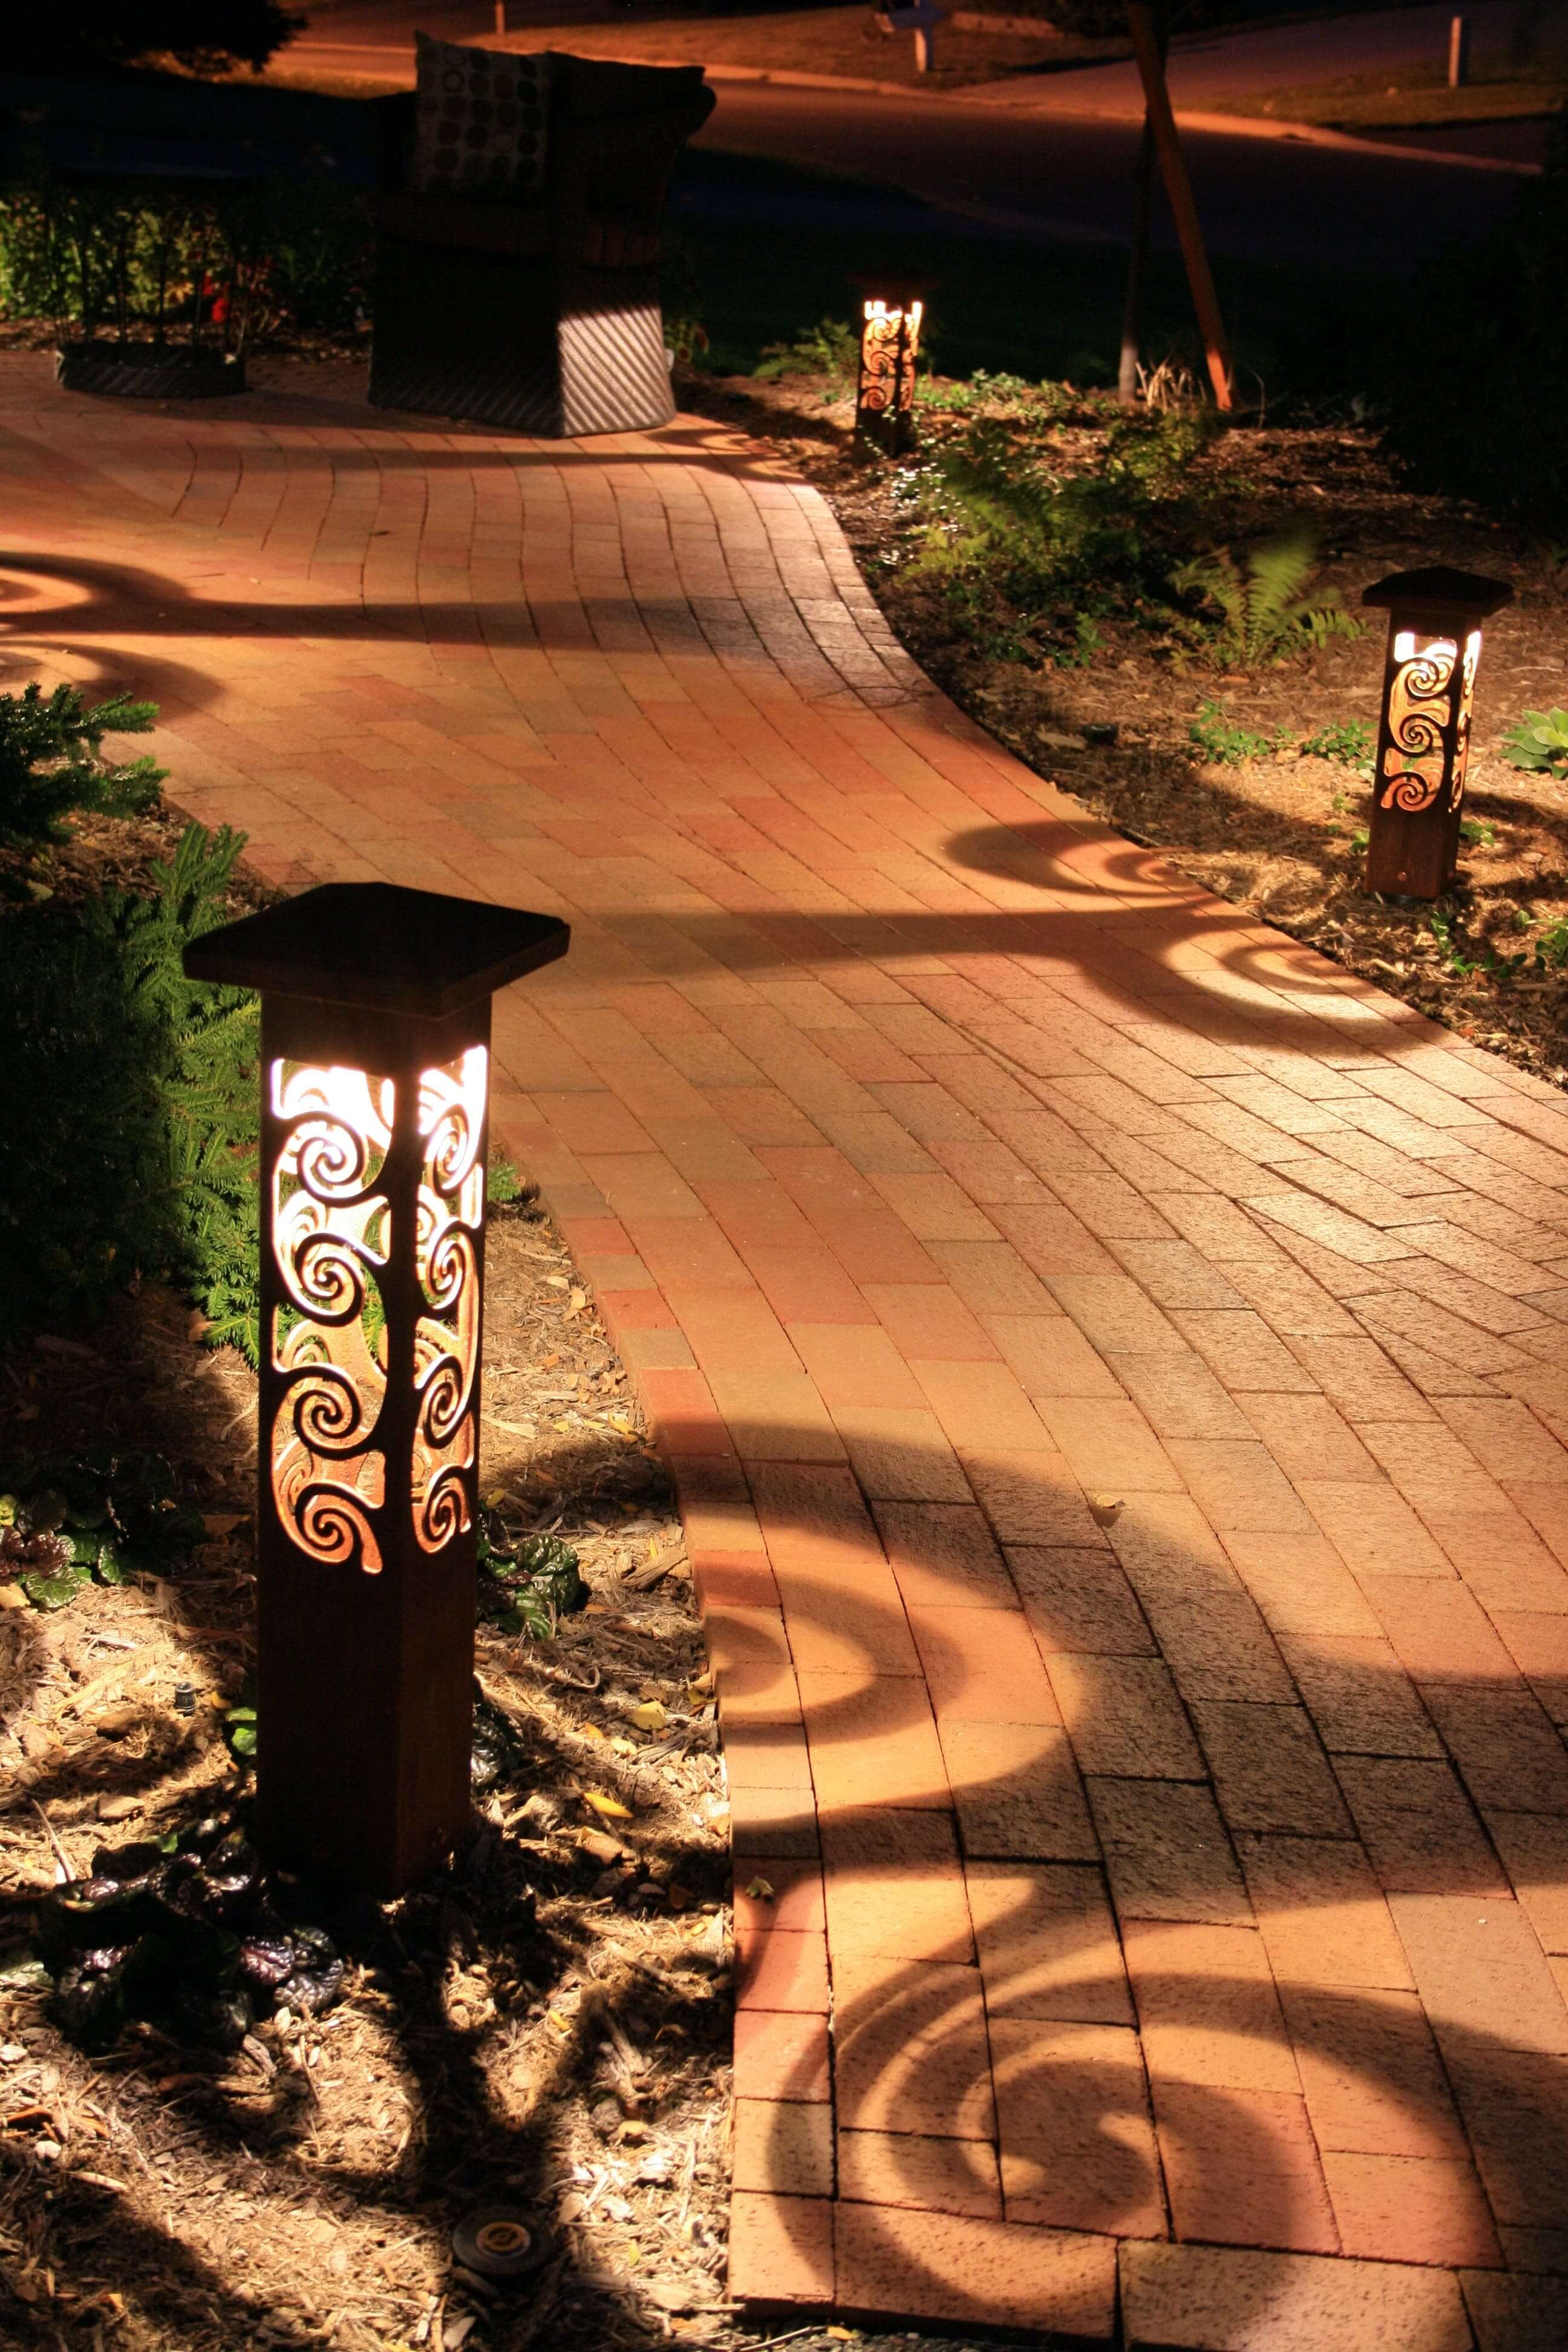 Specialty path lights on walkway